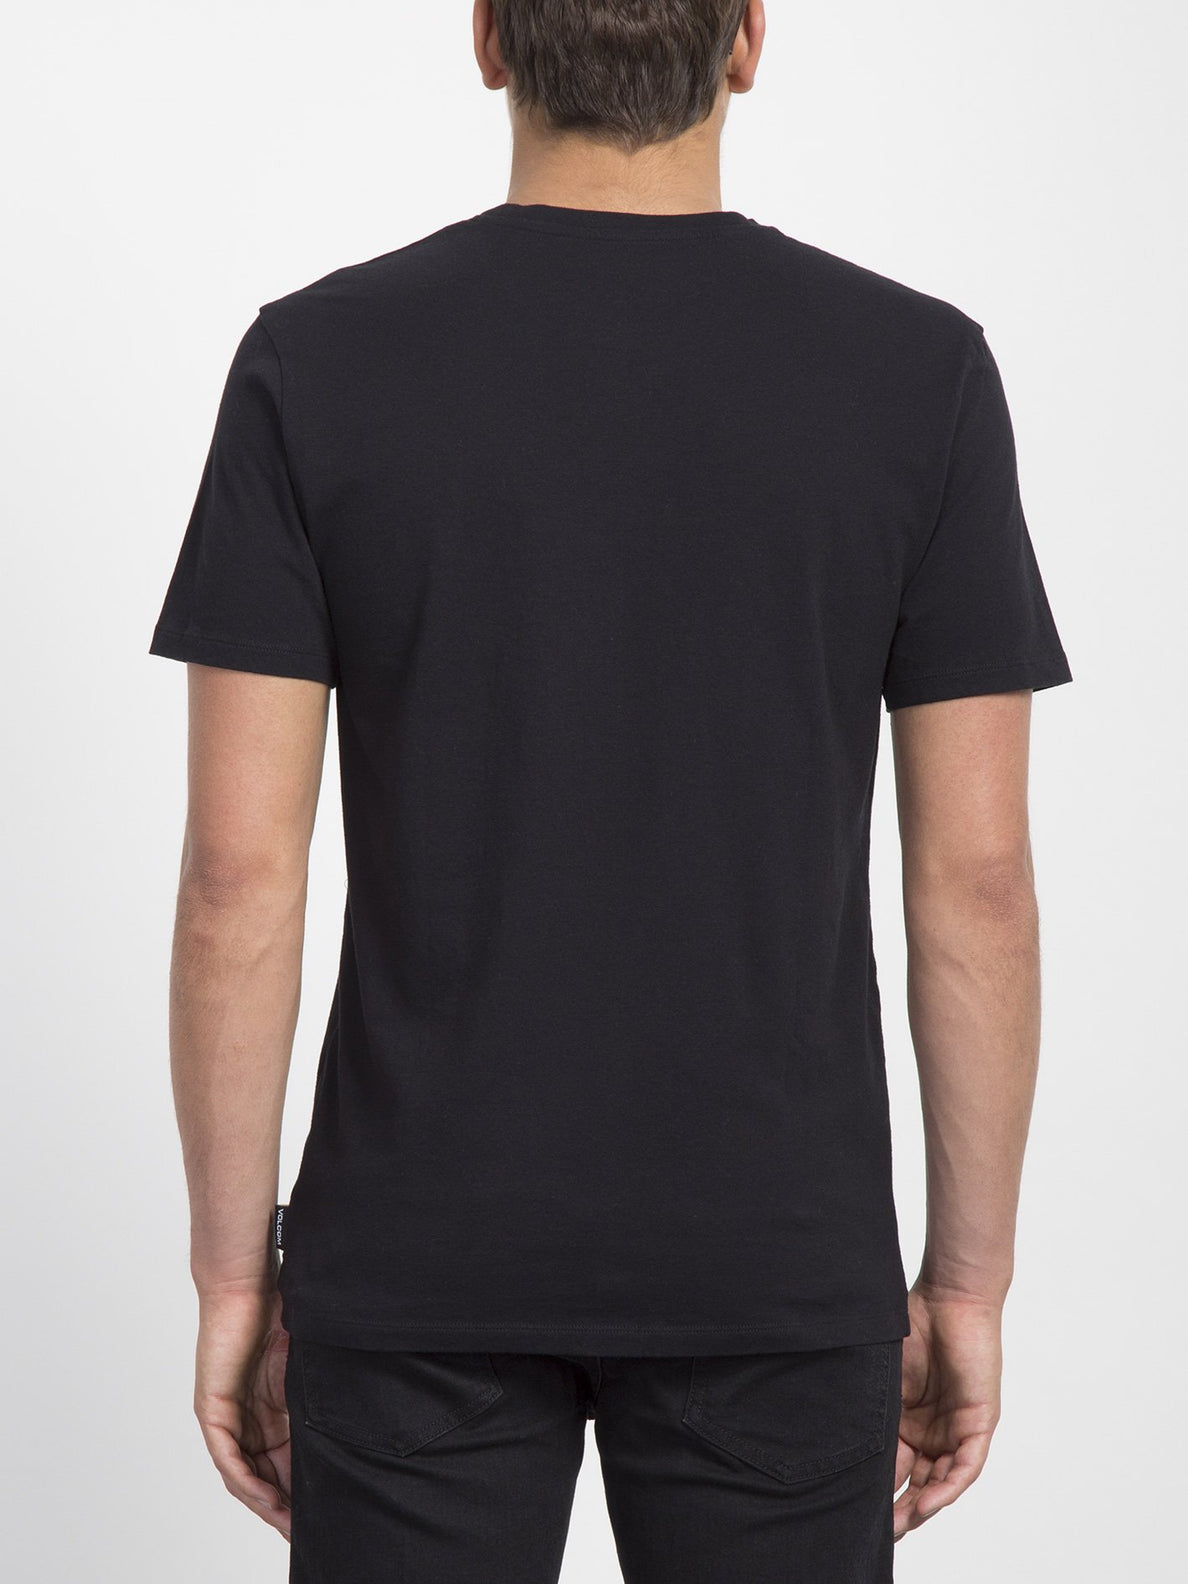 Travis Millard T-shirt  - Black